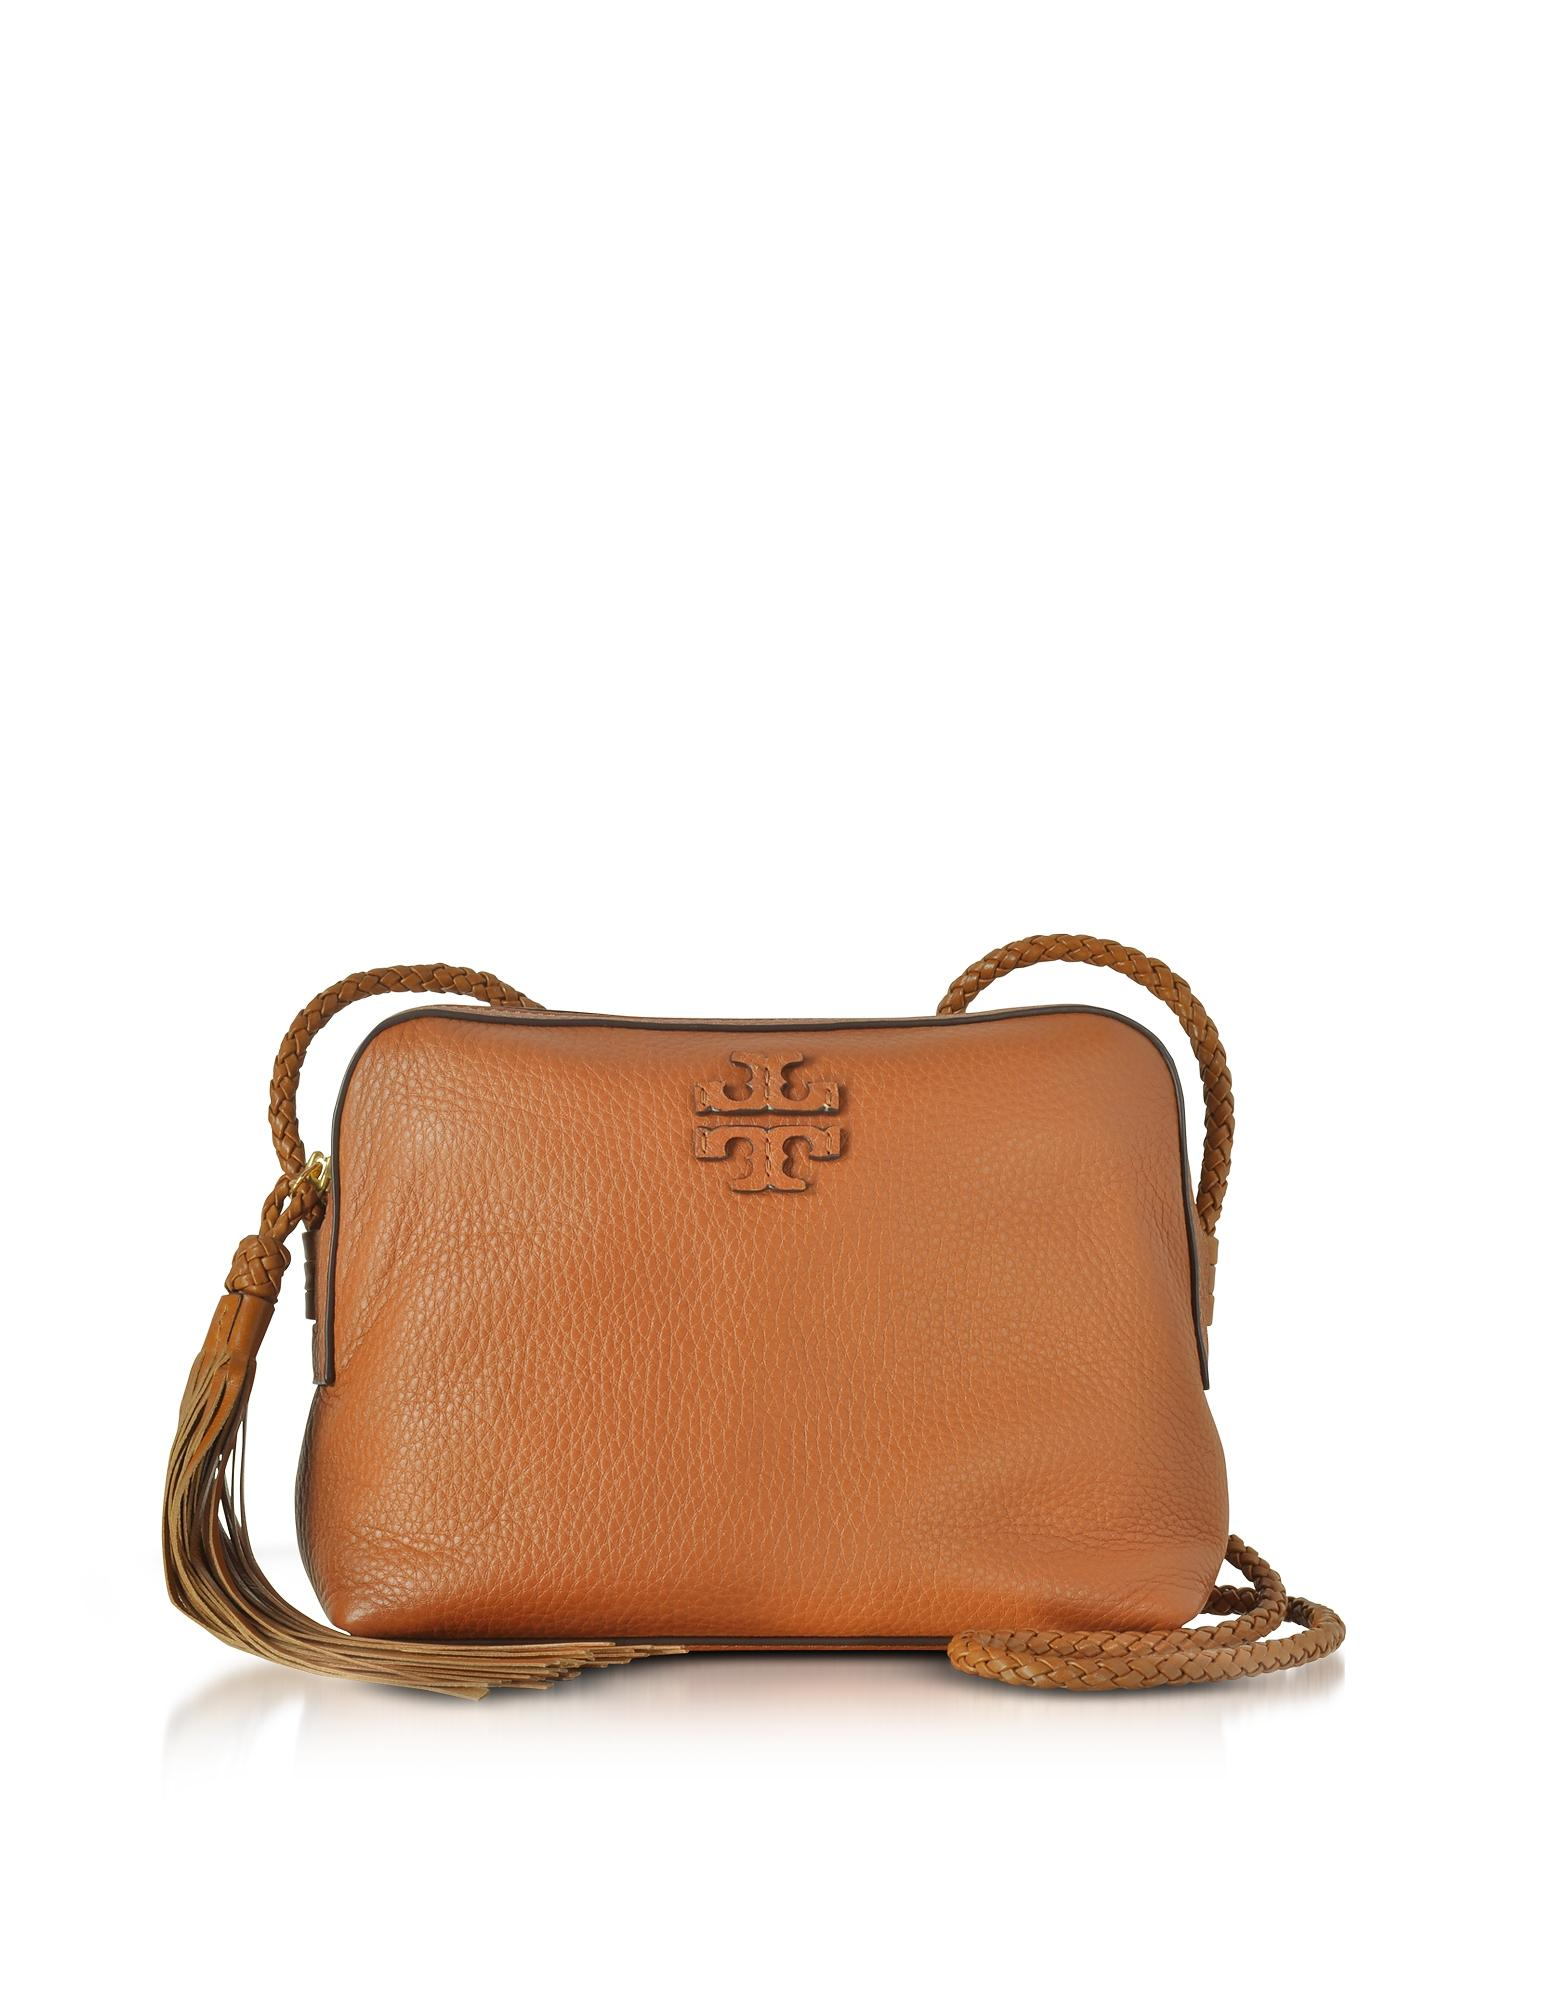 65c2806d529 Lyst - Tory Burch Taylor Saddle Pebble Leather Camera Bag in Brown